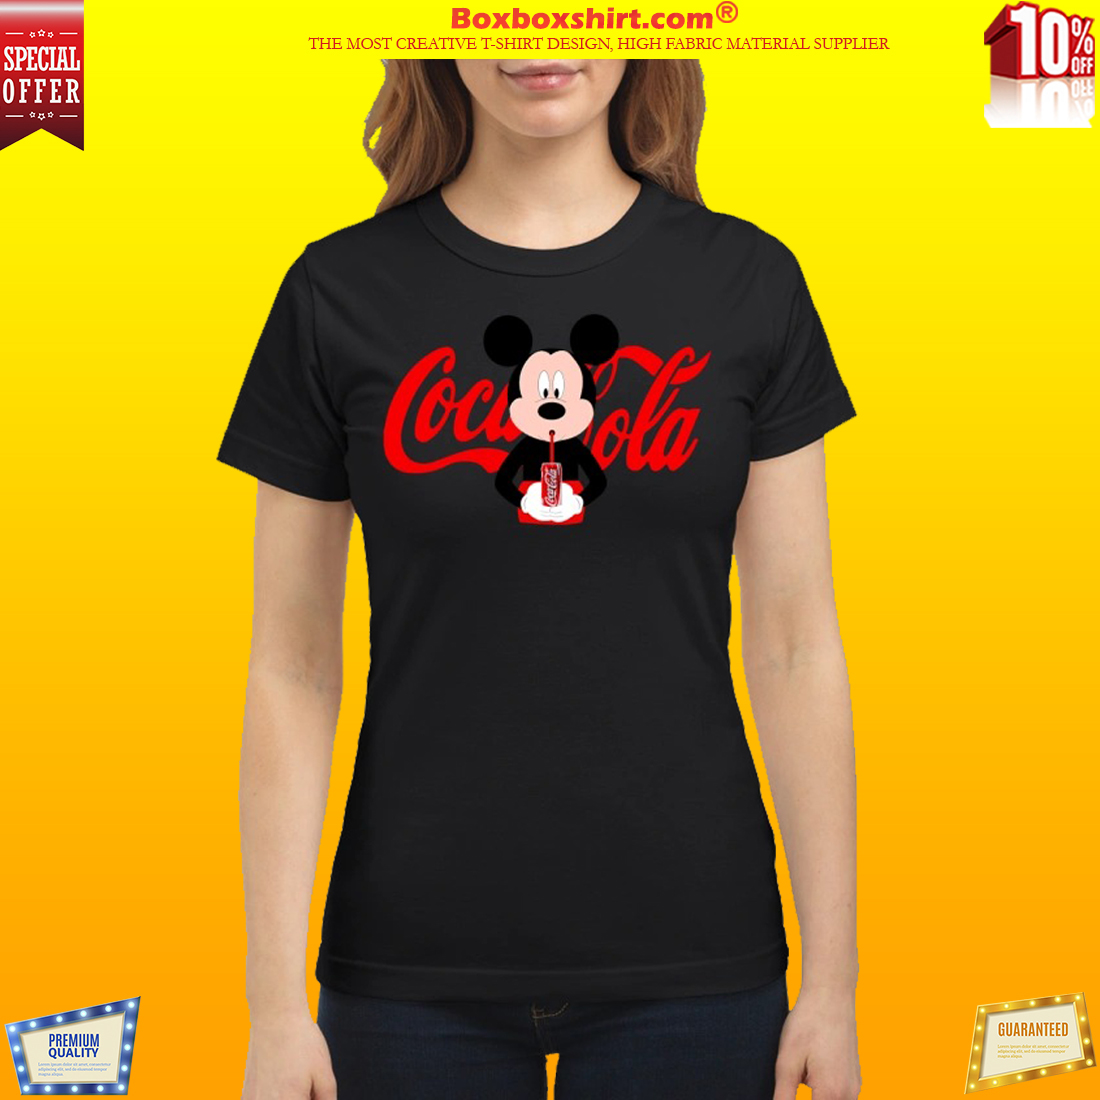 db25350f391974 NEWEST  Mickey Mouse drinks coca cola shirt